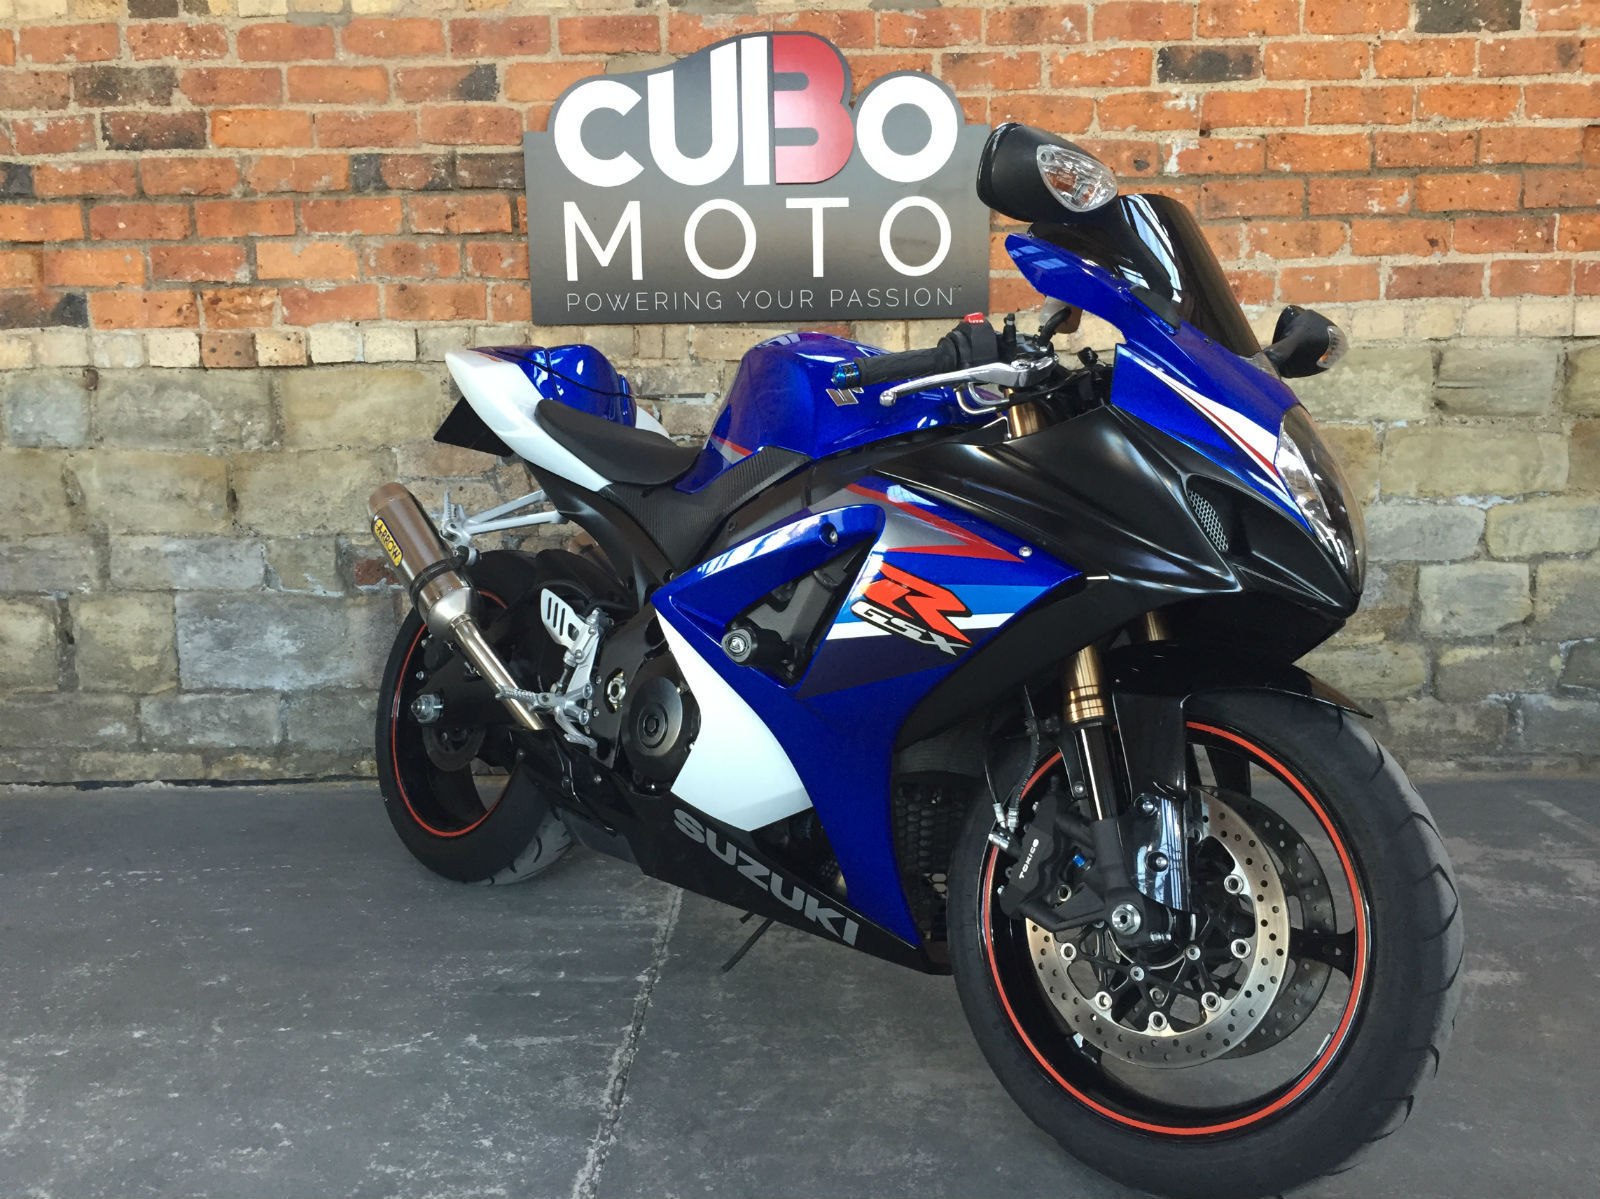 suzuki gsxr 1000 cc gsx r1000 k7 arrow exhausts. Black Bedroom Furniture Sets. Home Design Ideas